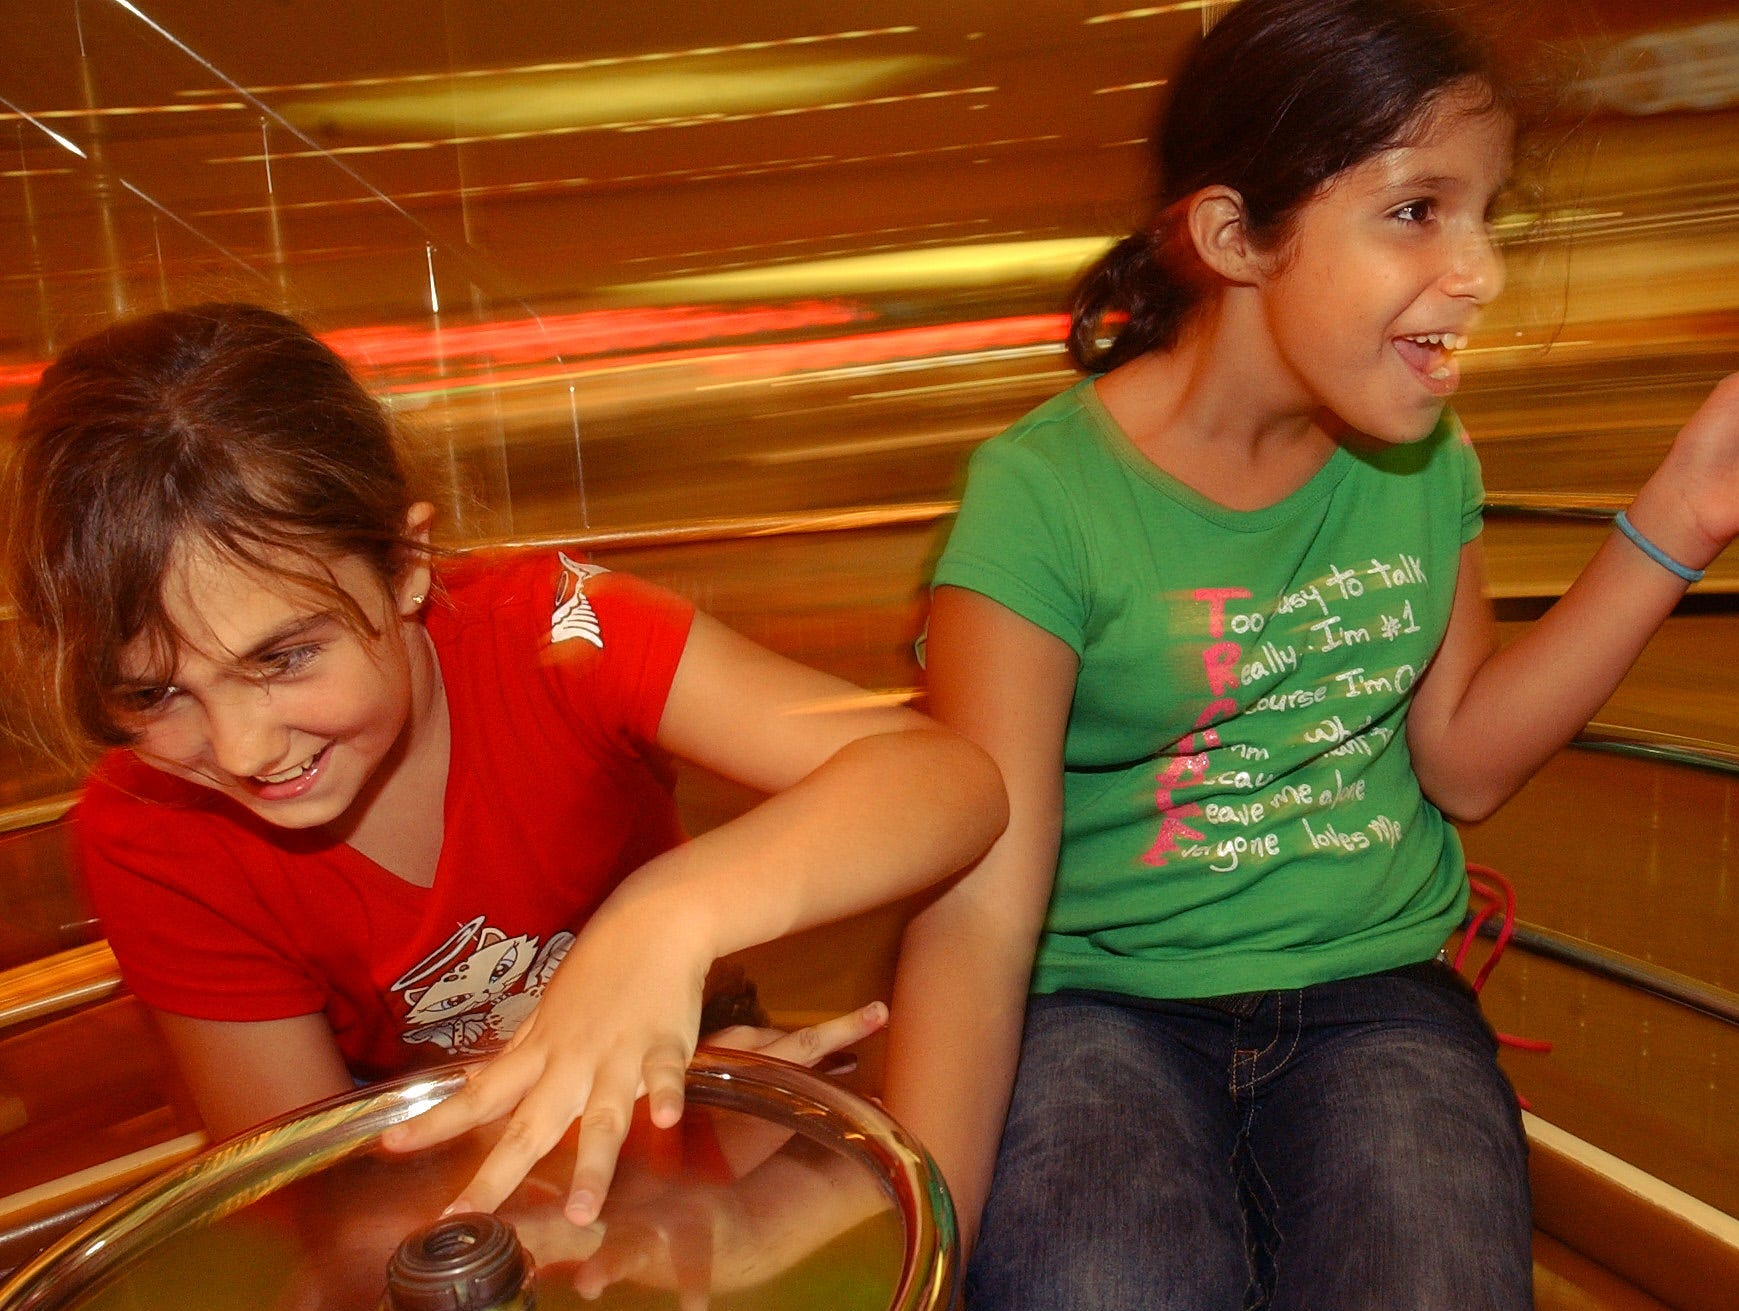 Vegas and Sierra Longlois ride the carousel in Padre Staples Mall in Corpus Christi on July 21, 2004.